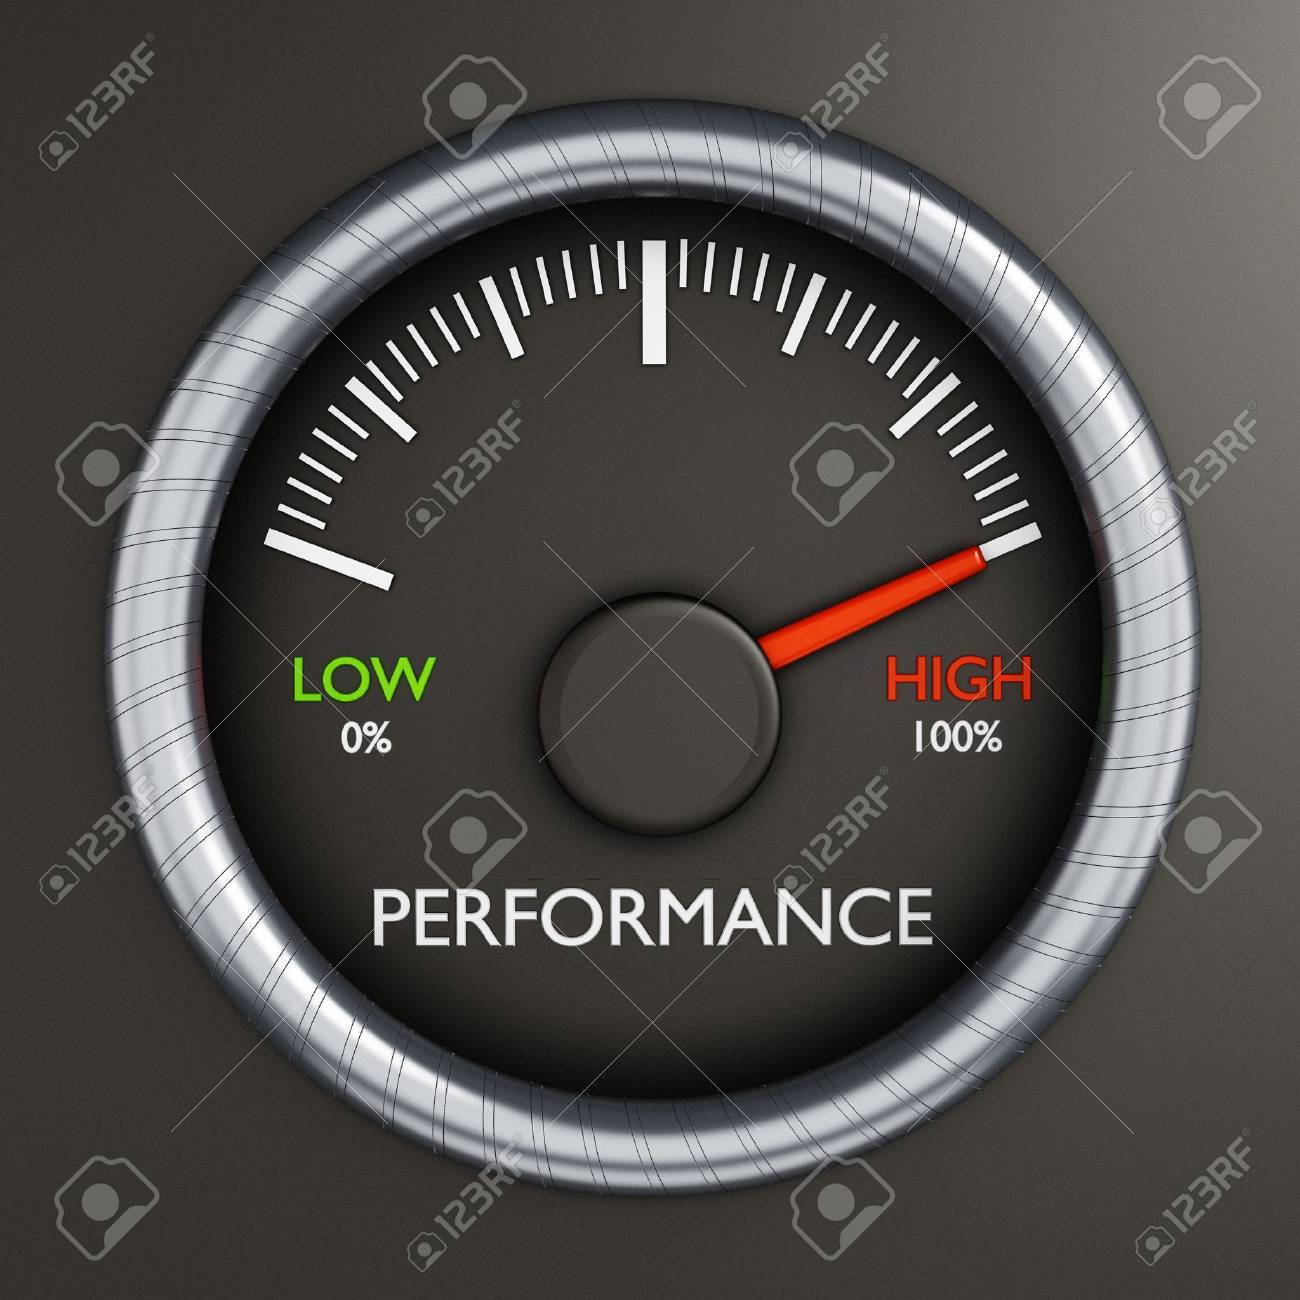 Performance meter indicates high performance Stock Photo - 40058619